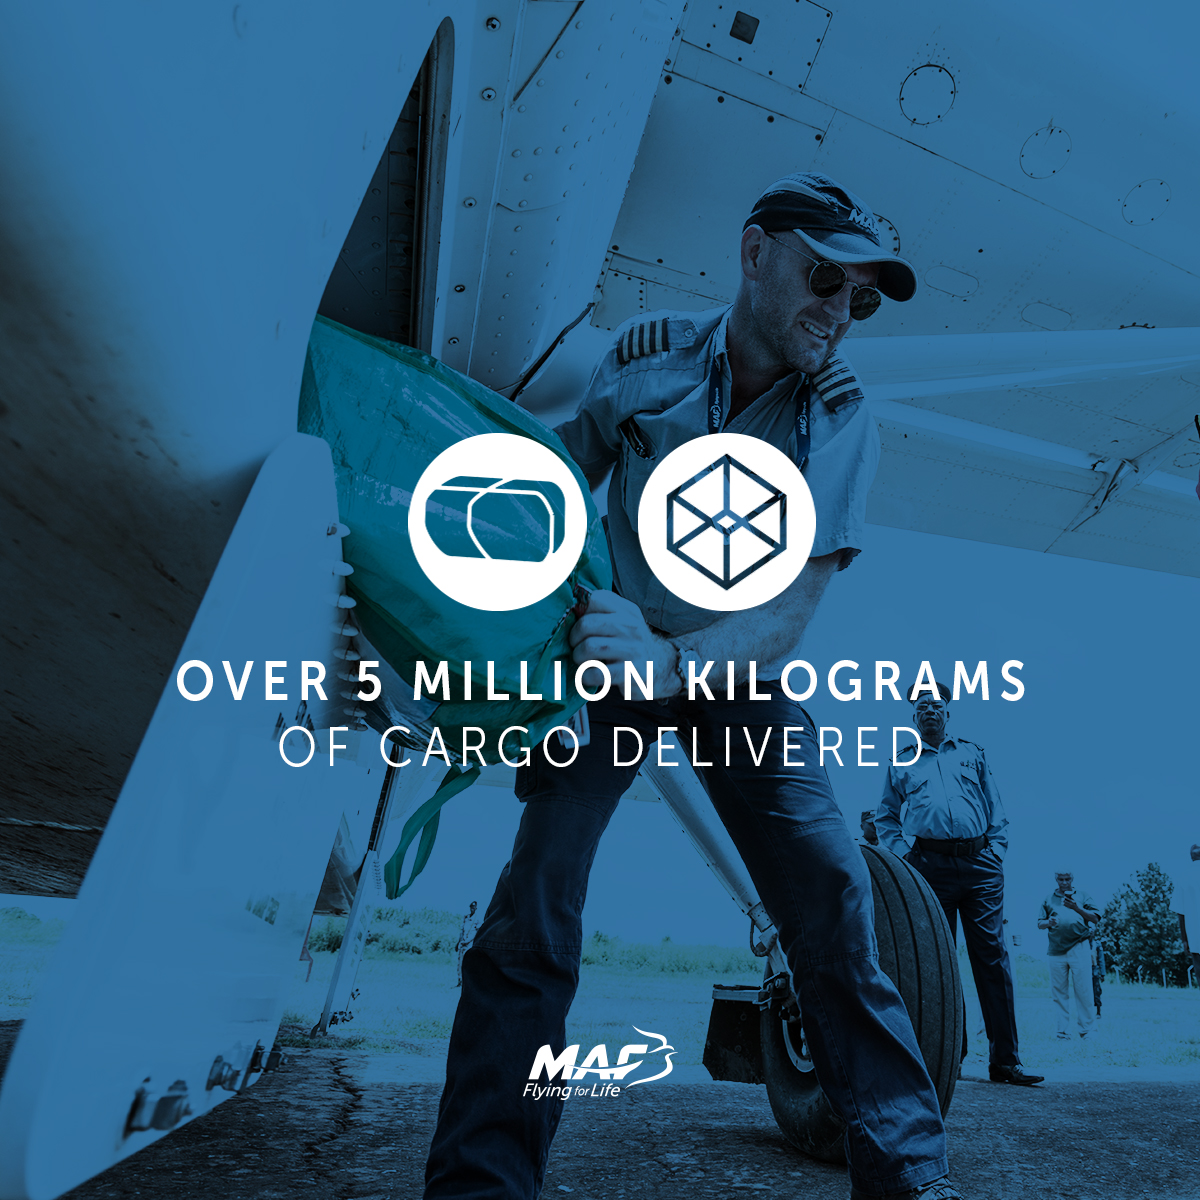 Weight of cargo delivered by MAF in 2017